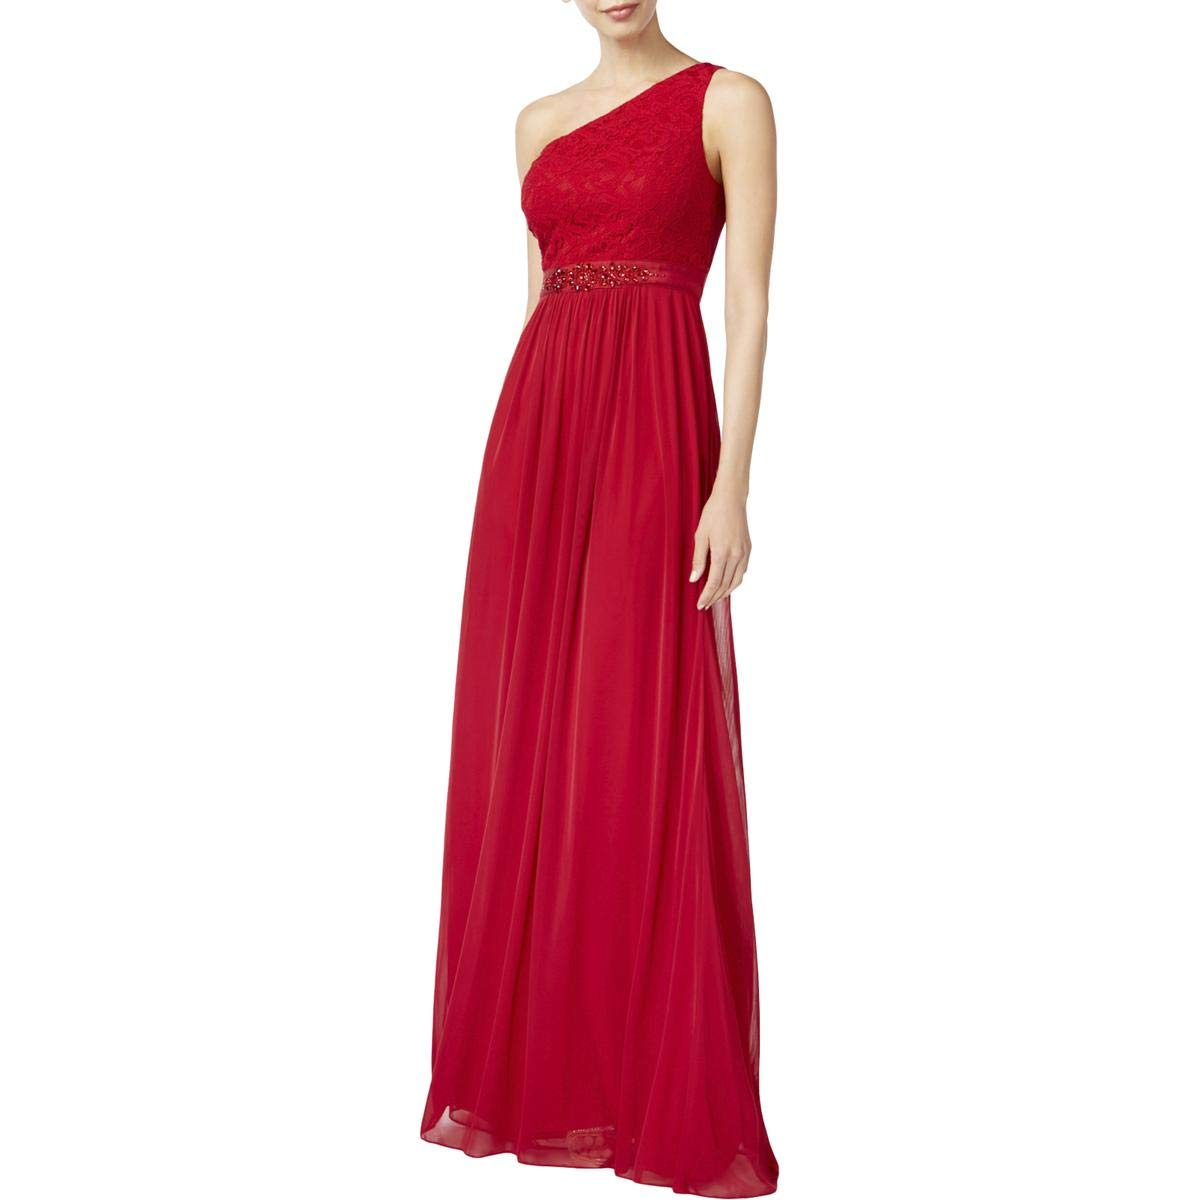 Cherry Adrianna Papell Womens One Shoulder Lace Evening Dress